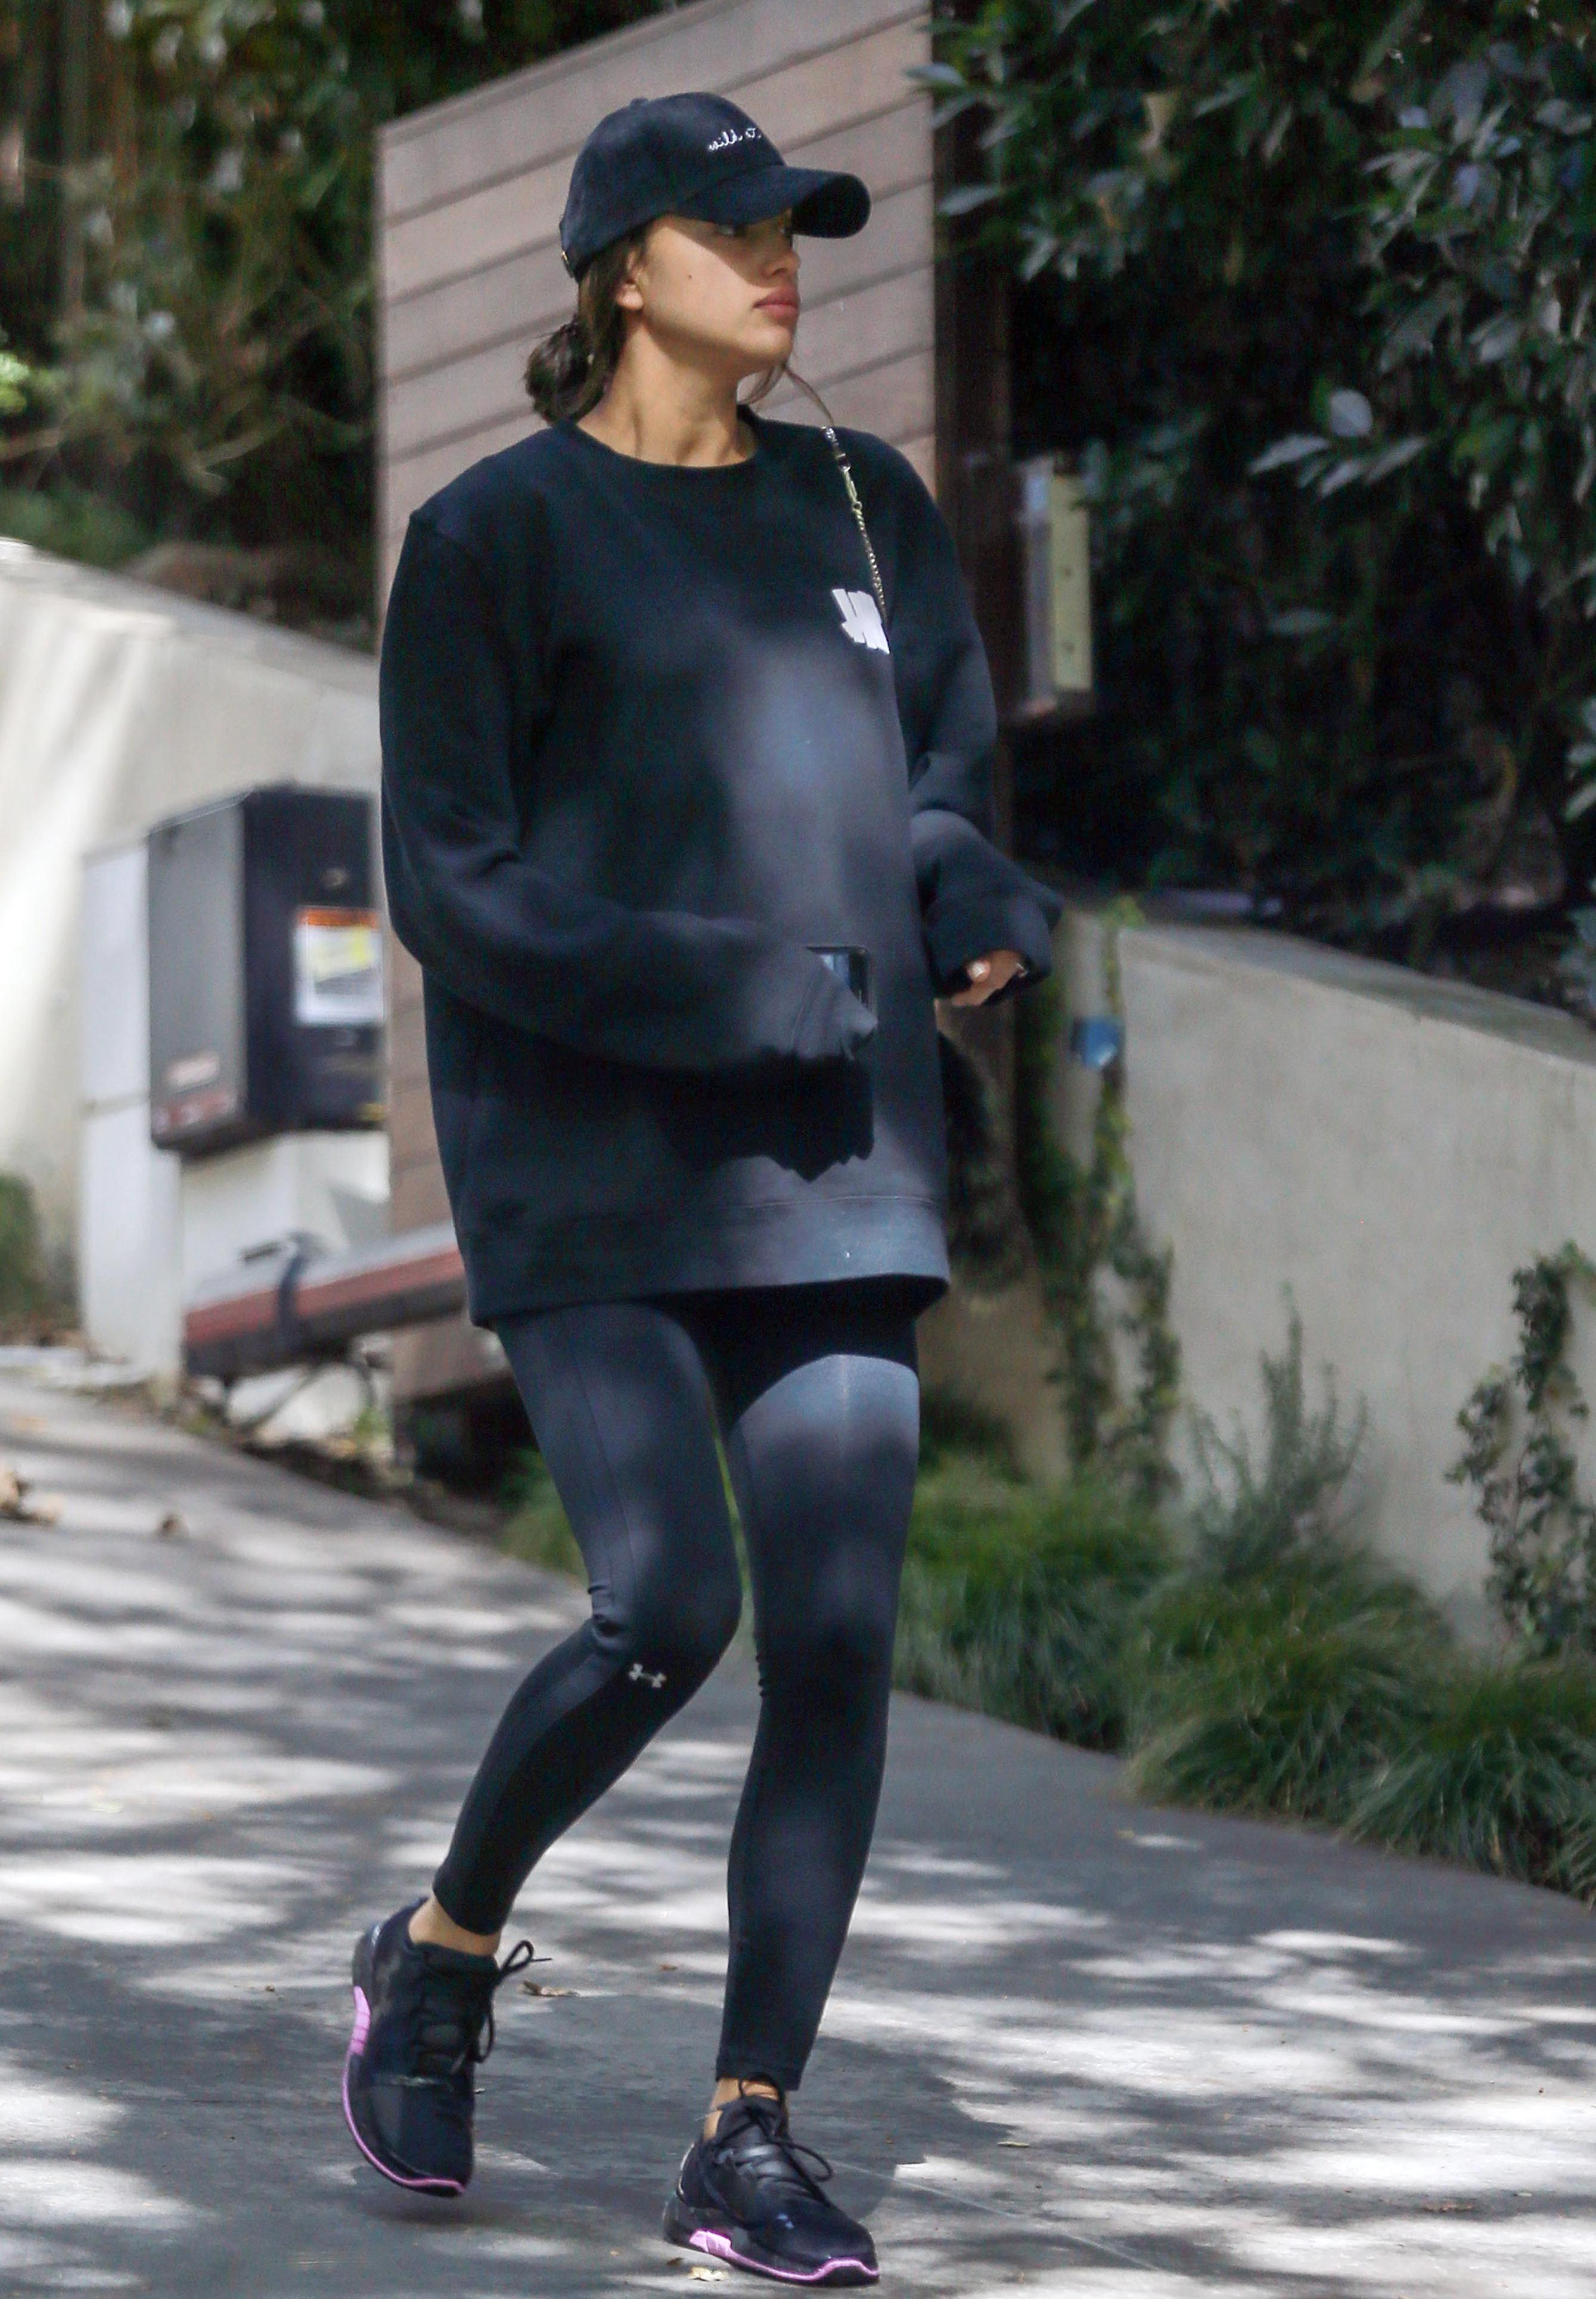 EXCLUSIVE Irina Shayk Covers Up her Growing Baby Bump as she Hits the Gym in LA